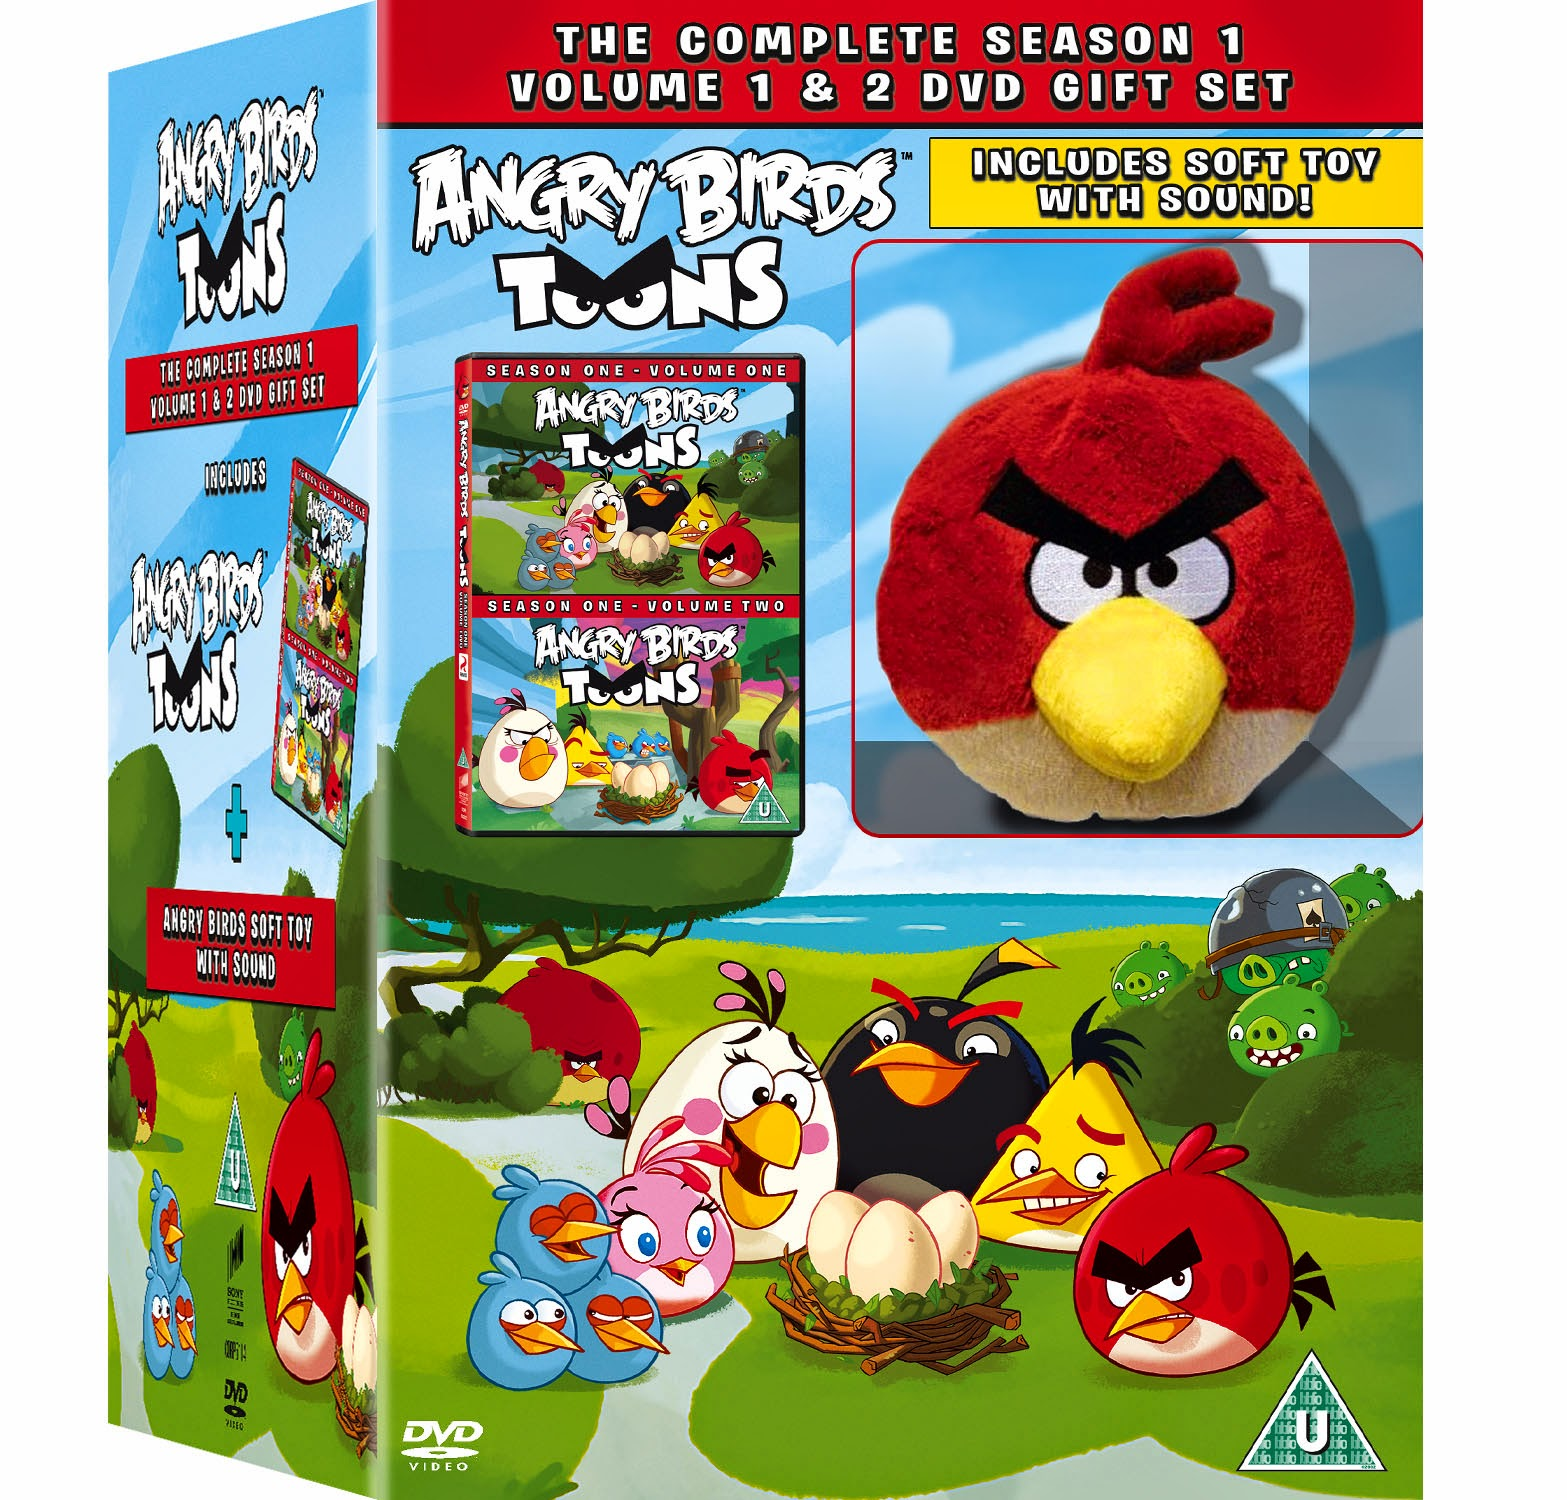 ac03b798be Hands up if you have an Angry Birds fan in your household. Well, you've  played the game, now catch up on the cartoon series !